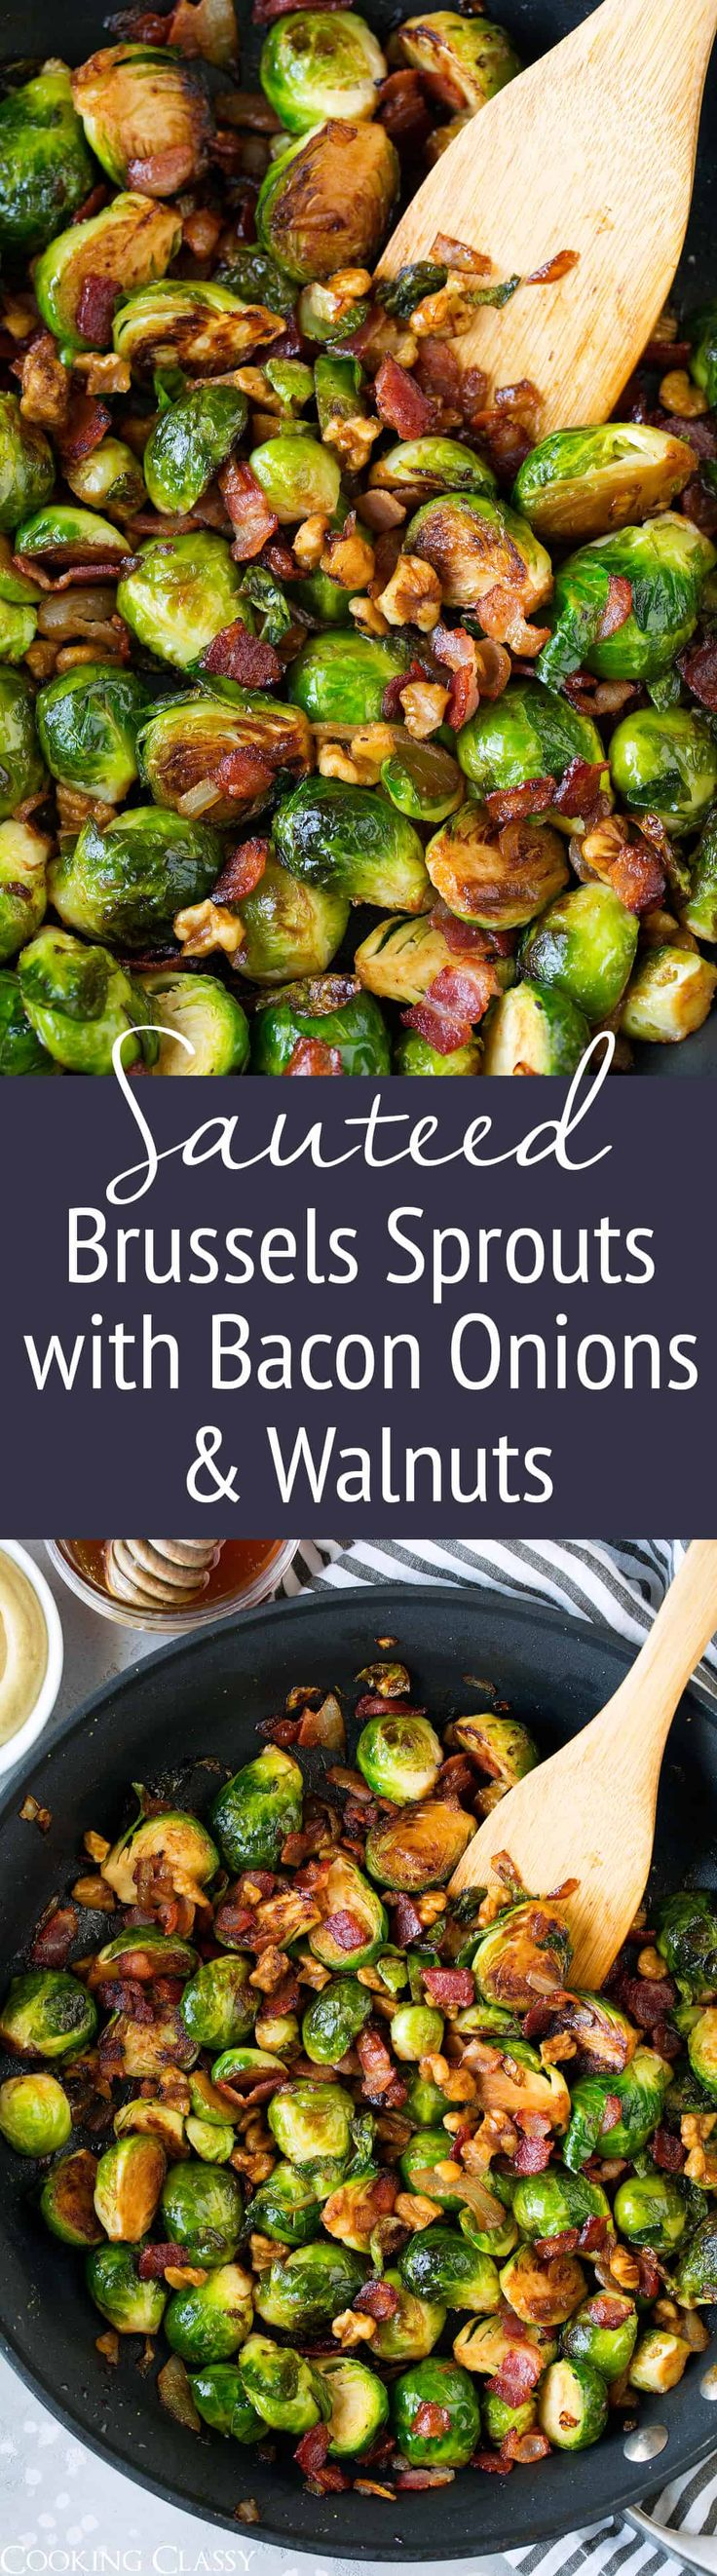 Sauteed Brussels Sprouts with Bacon Onions and Walnuts - These brussels sprouts will likely become a go-to side dish in your rotation! They're perfectly delicious and easy to make. Plus they have such a great flavor combination! via @cookingclassy